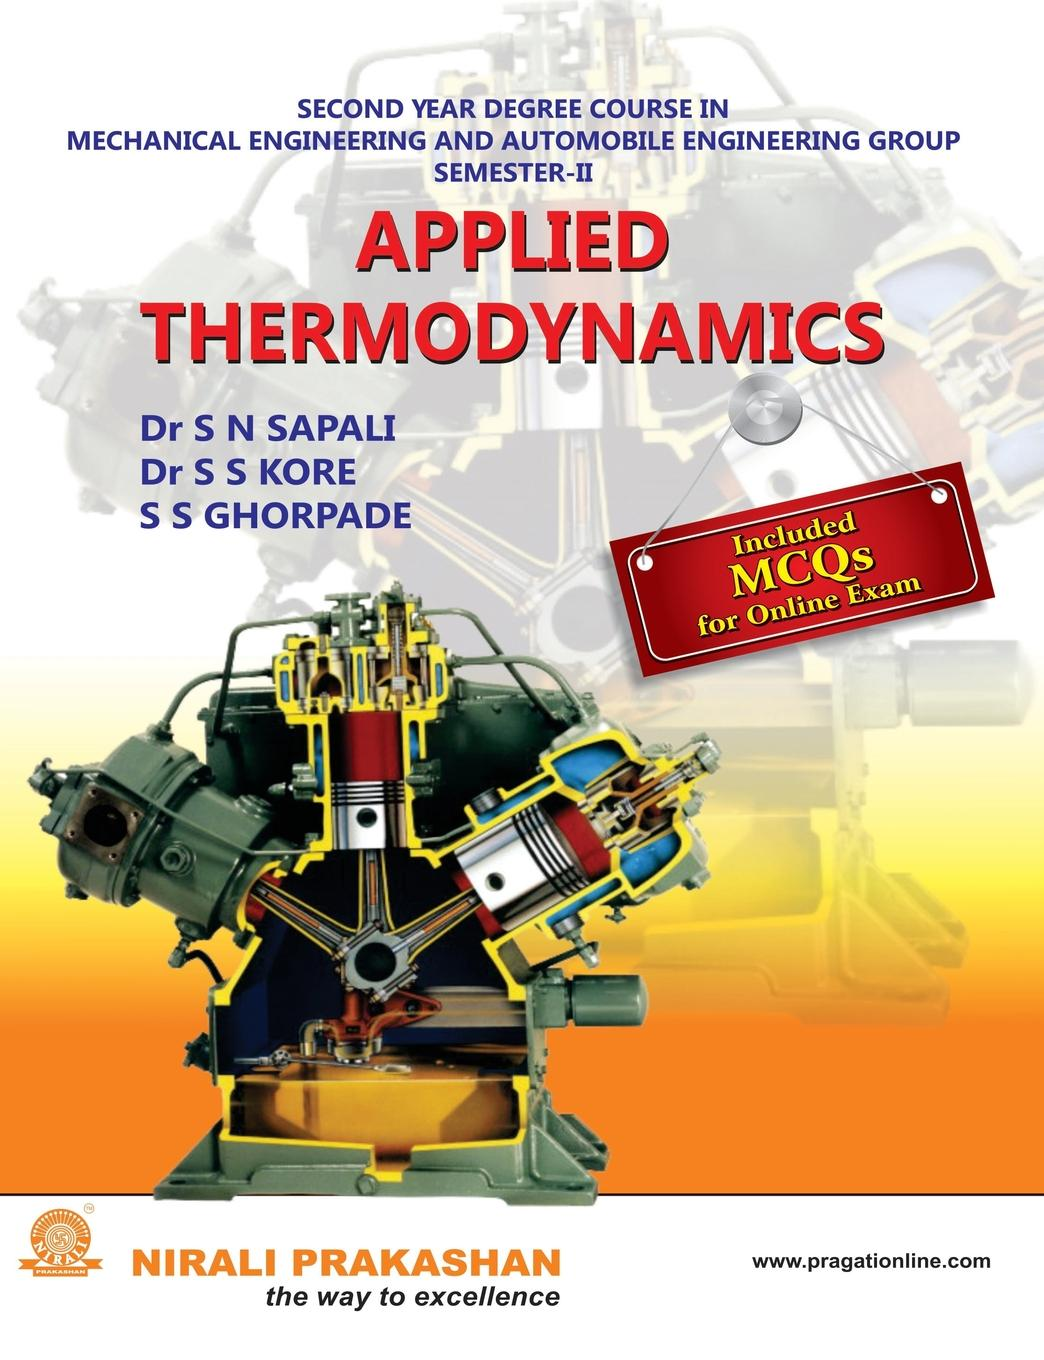 DR S S KORE, S S GHORPADE, DR S N SAPALI APPLIED THERMODYNAMICS недорого